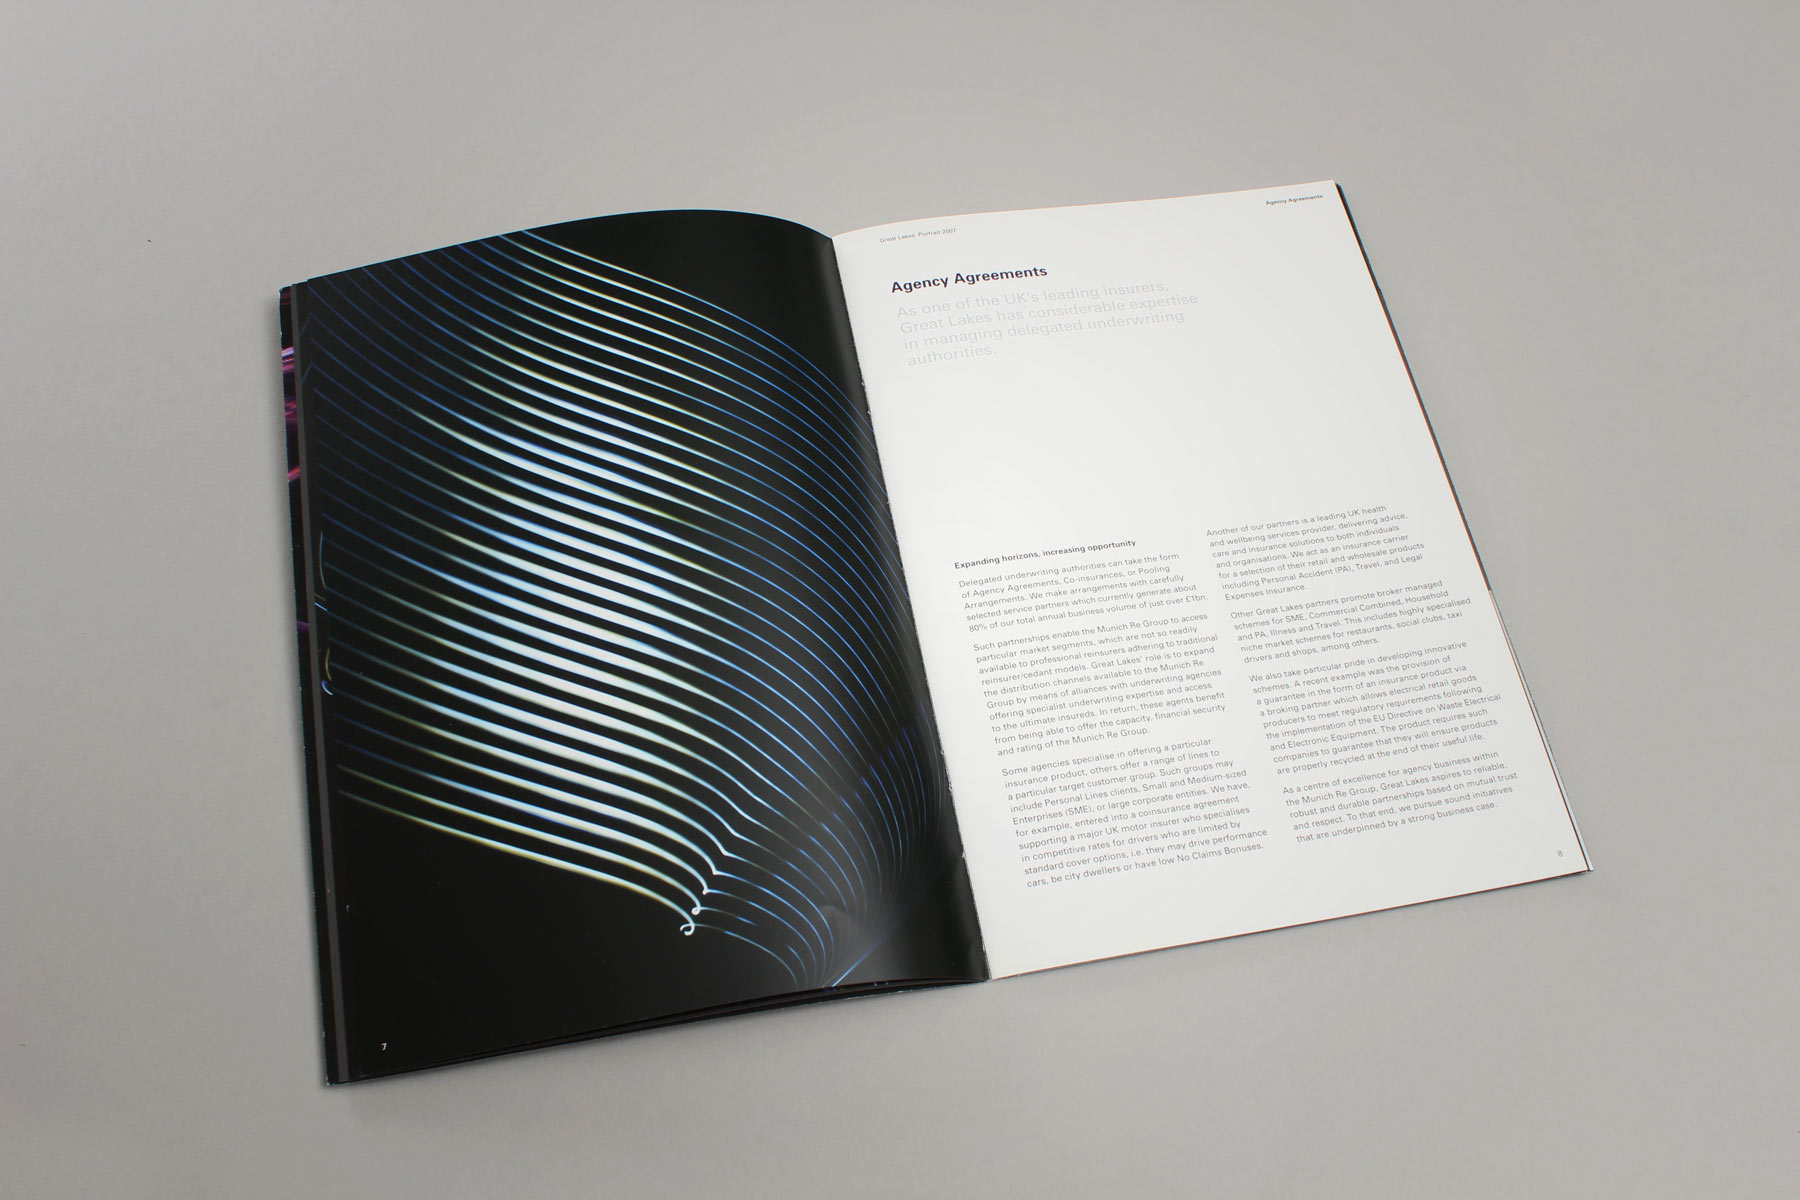 The brochure used imagery combined with a more formal and minimal text approach creating an business led publication.